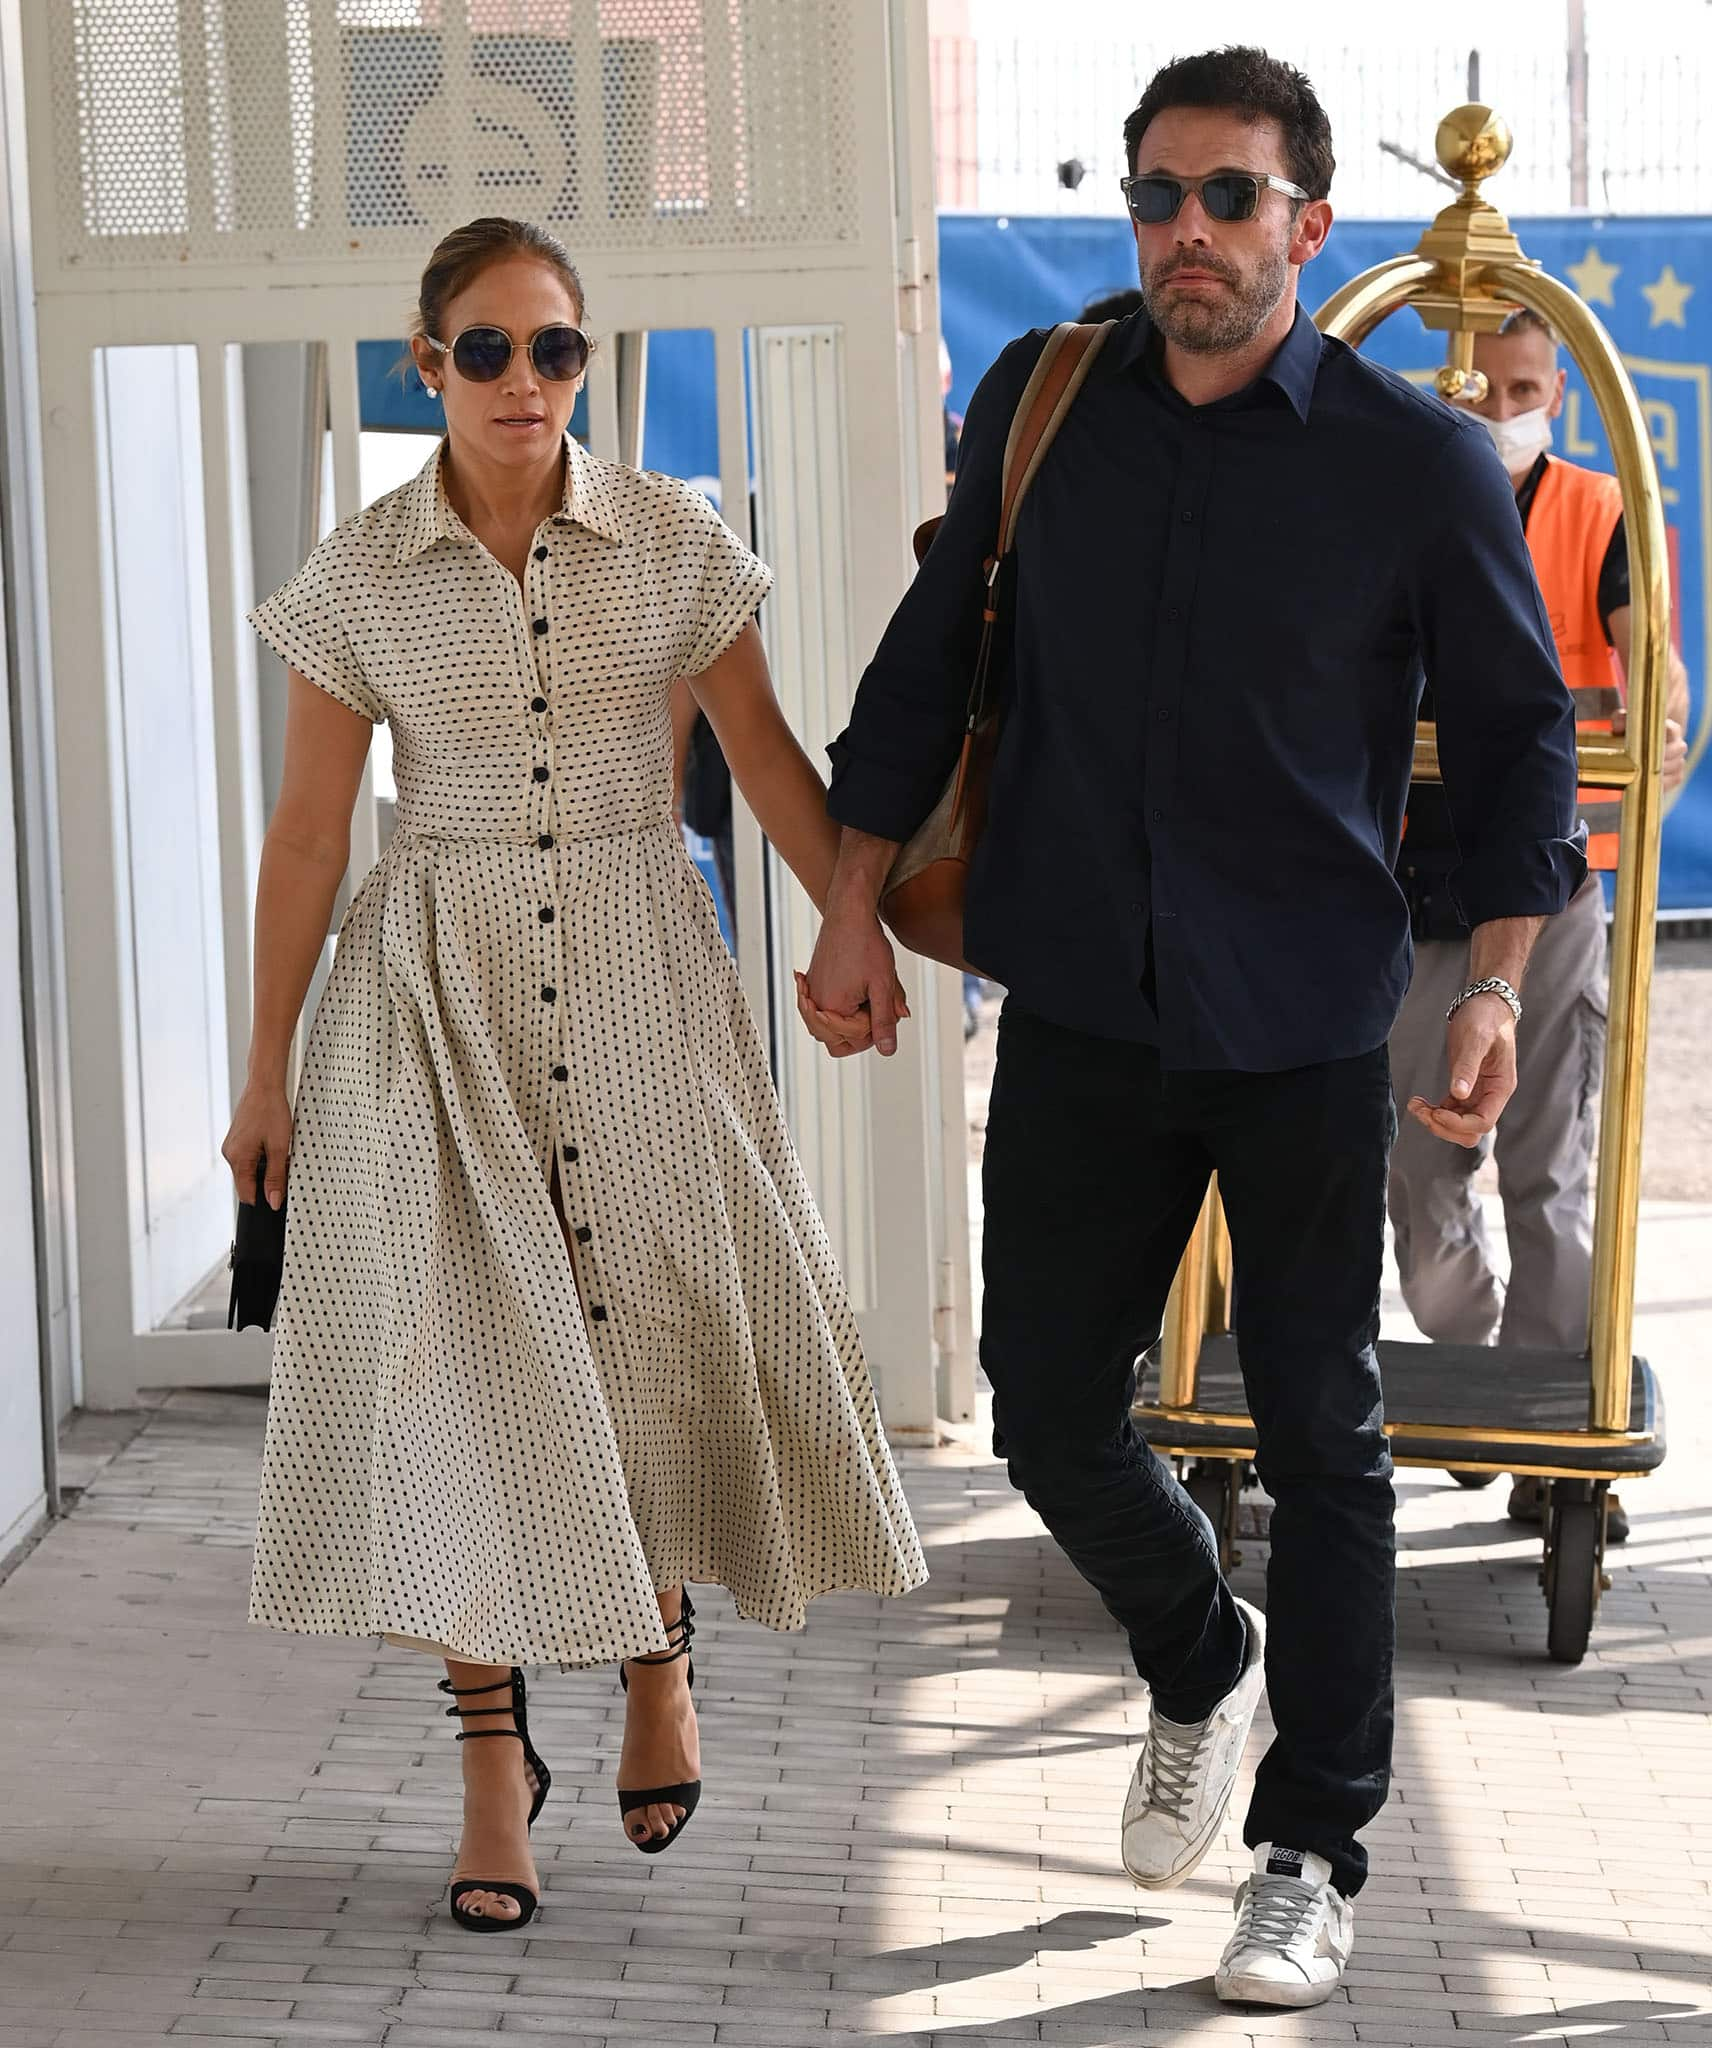 Jennifer Lopez and Ben Affleck holding hands at the Venice Marco Polo Airport on September 11, 2021